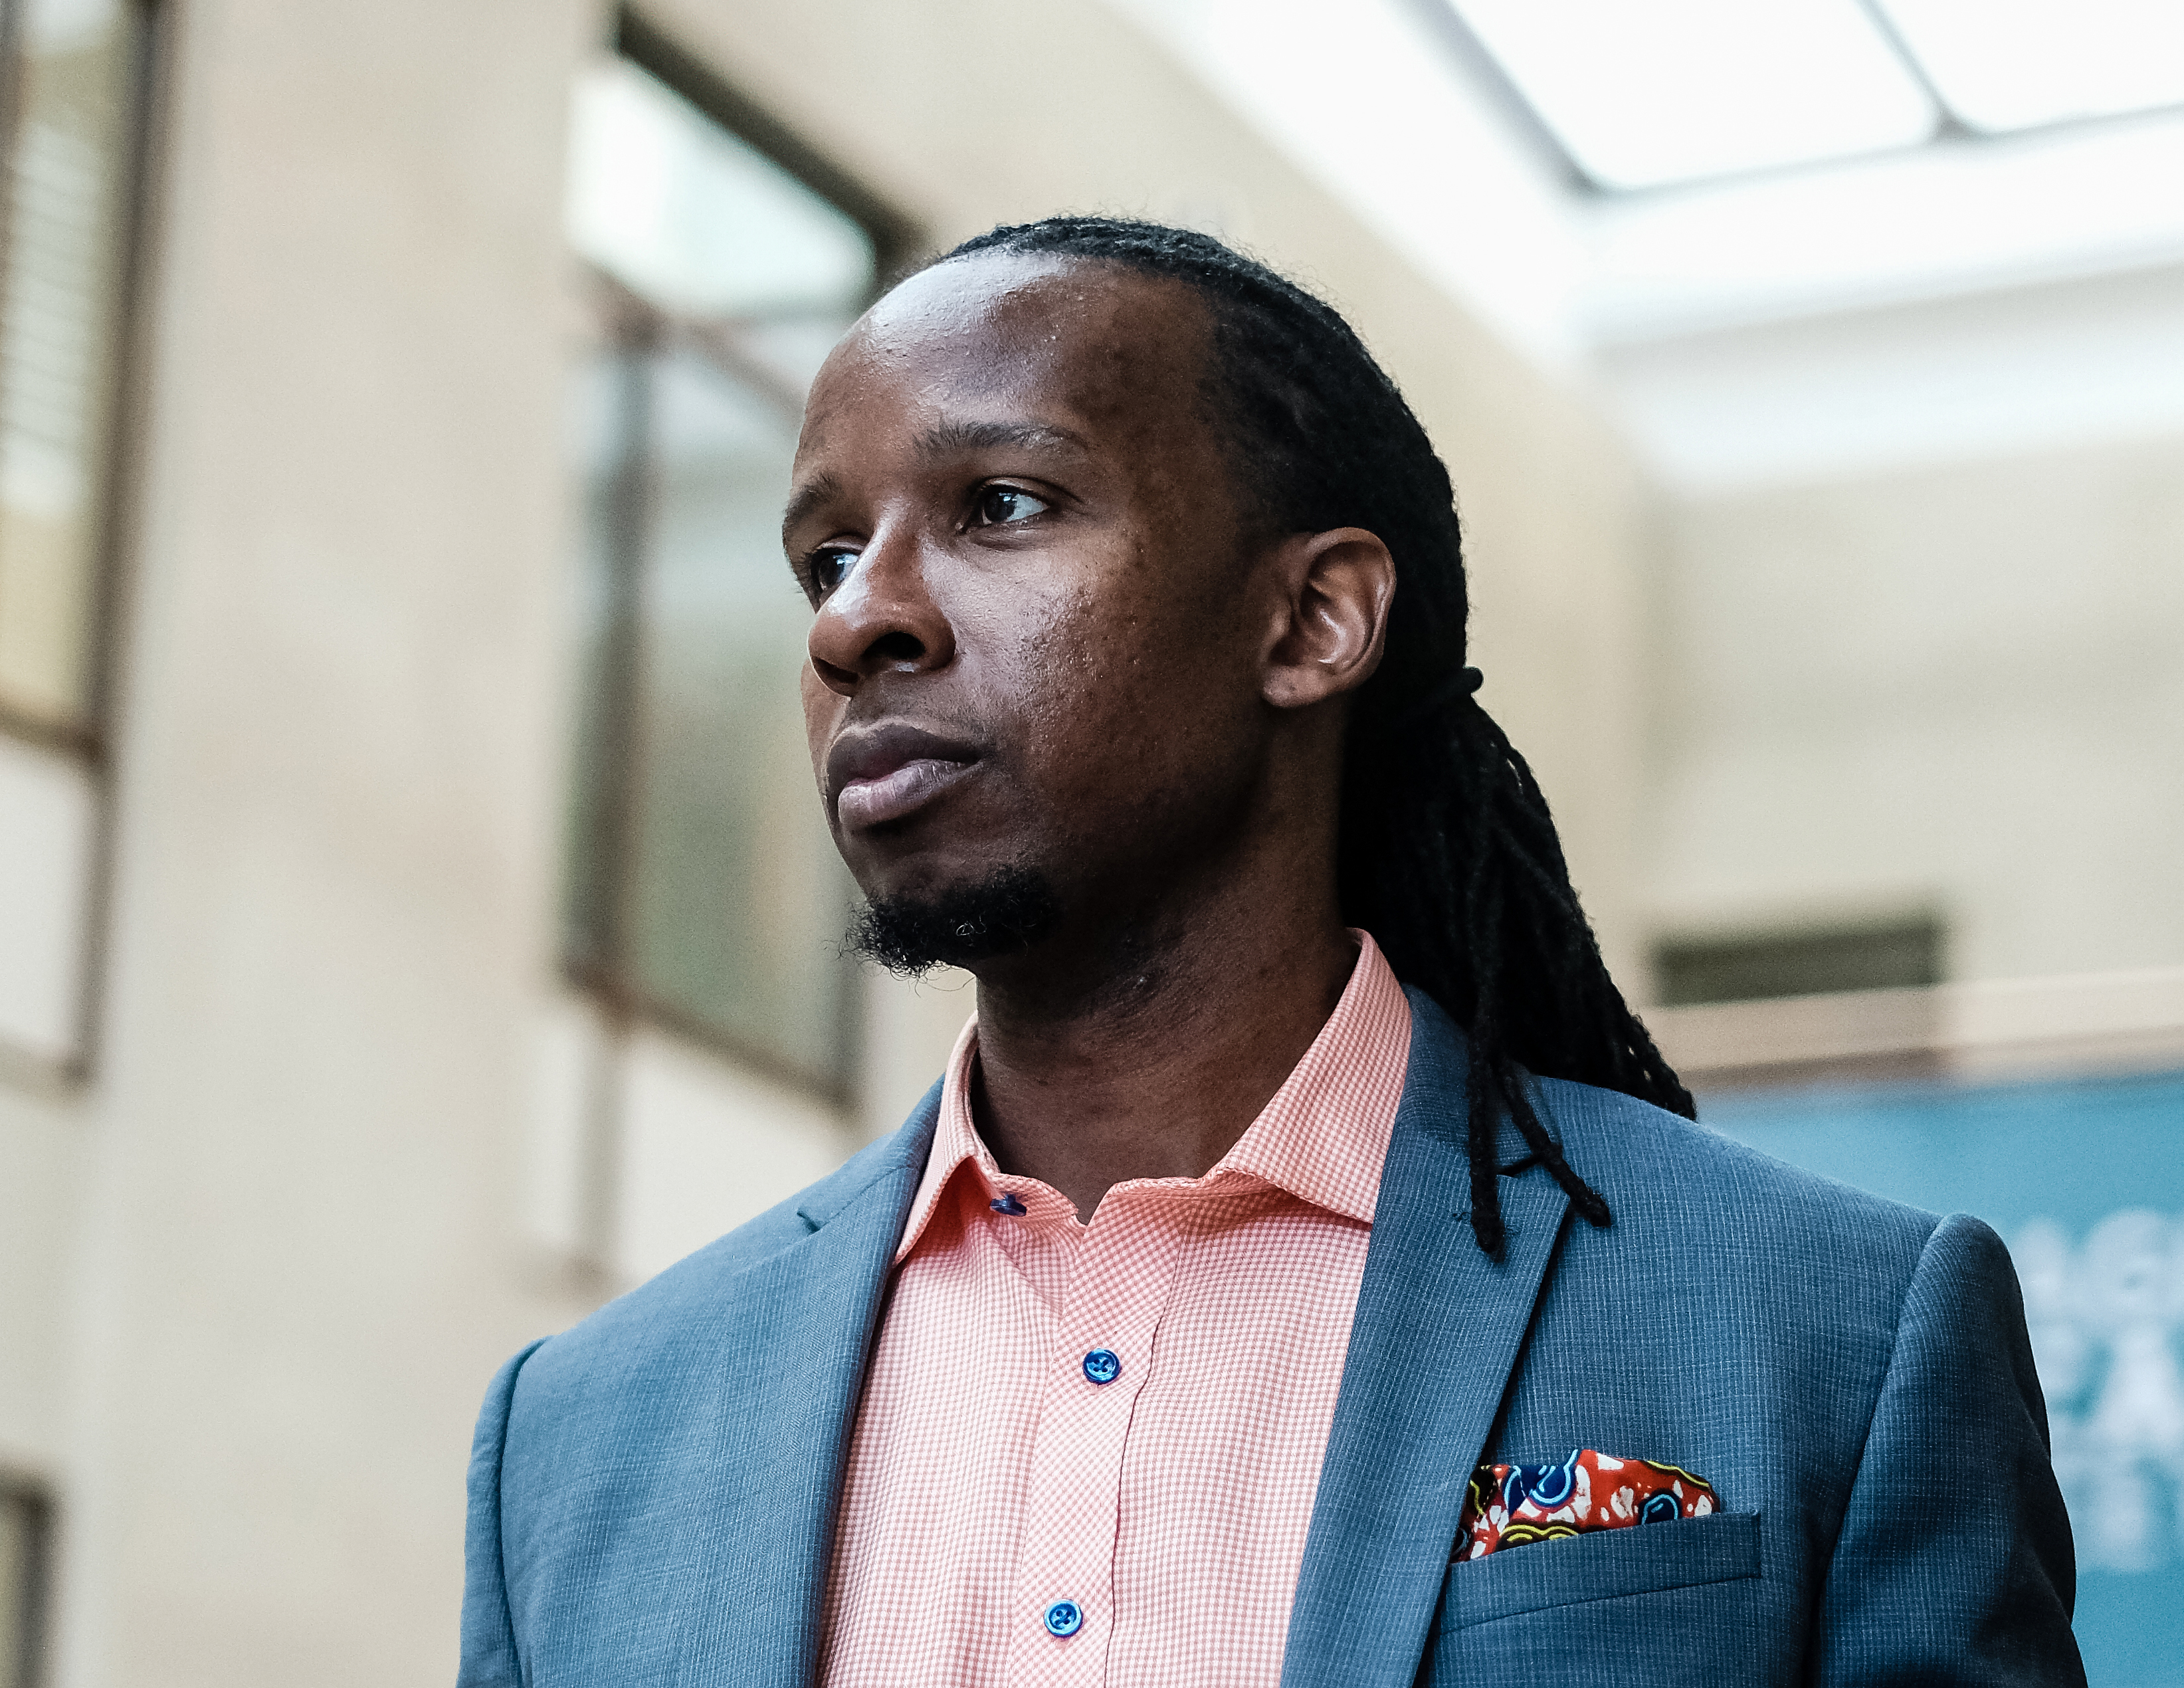 Ibram Kendi is a leading voice among a new generation of American scholars who are reinvestigating - and redefining - racism. MUST CREDIT: Photo for The Washington Post by Michael A. McCoy